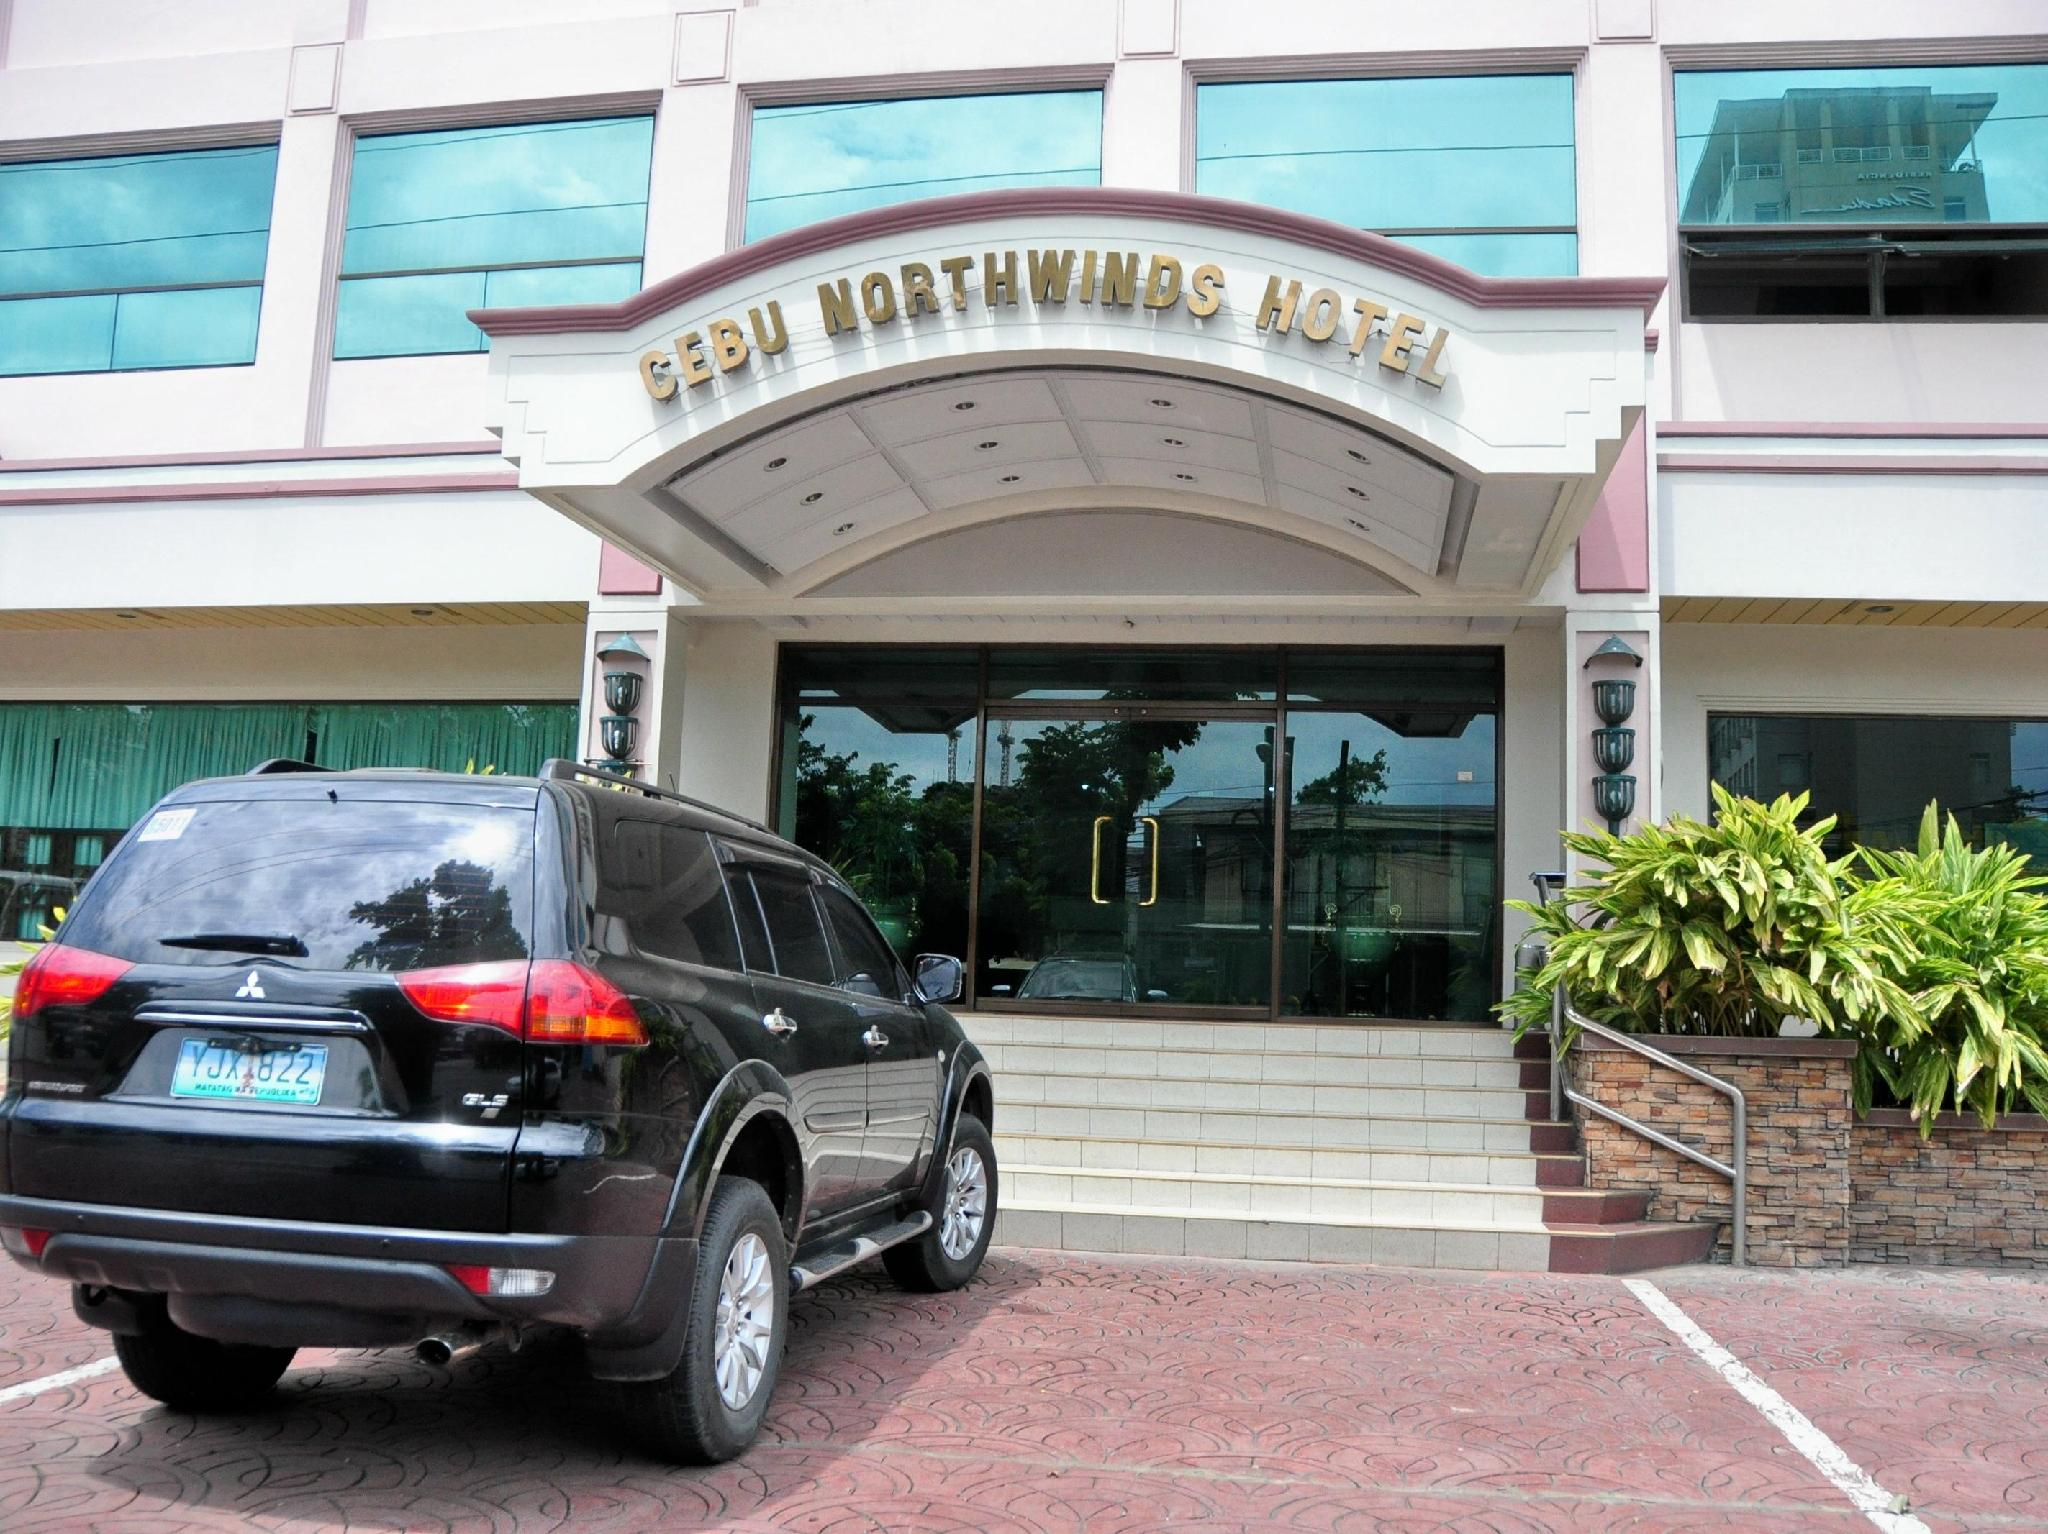 Cebu Northwinds Hotel 宿霧